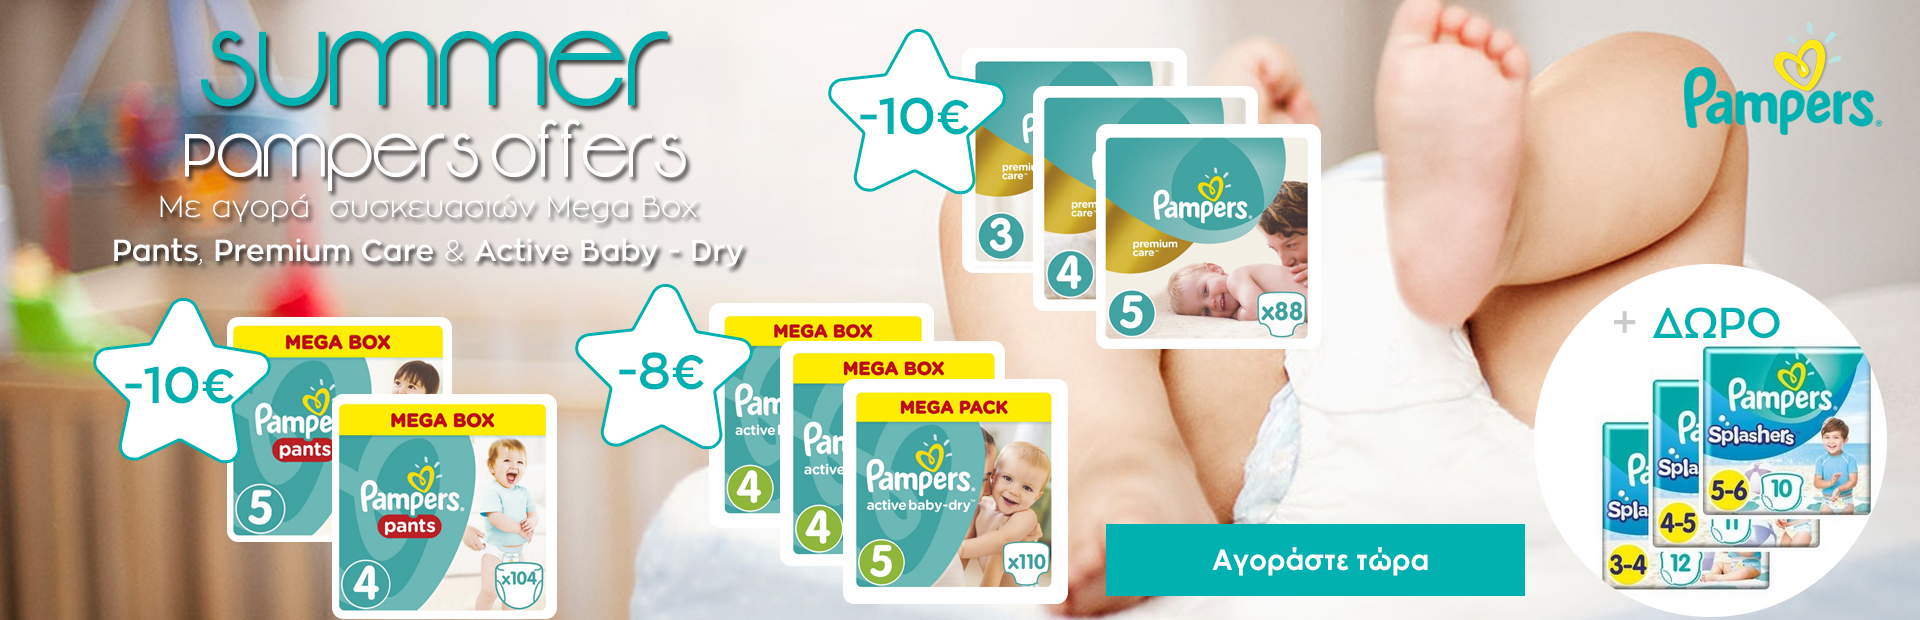 Pampers Offers May June 2018